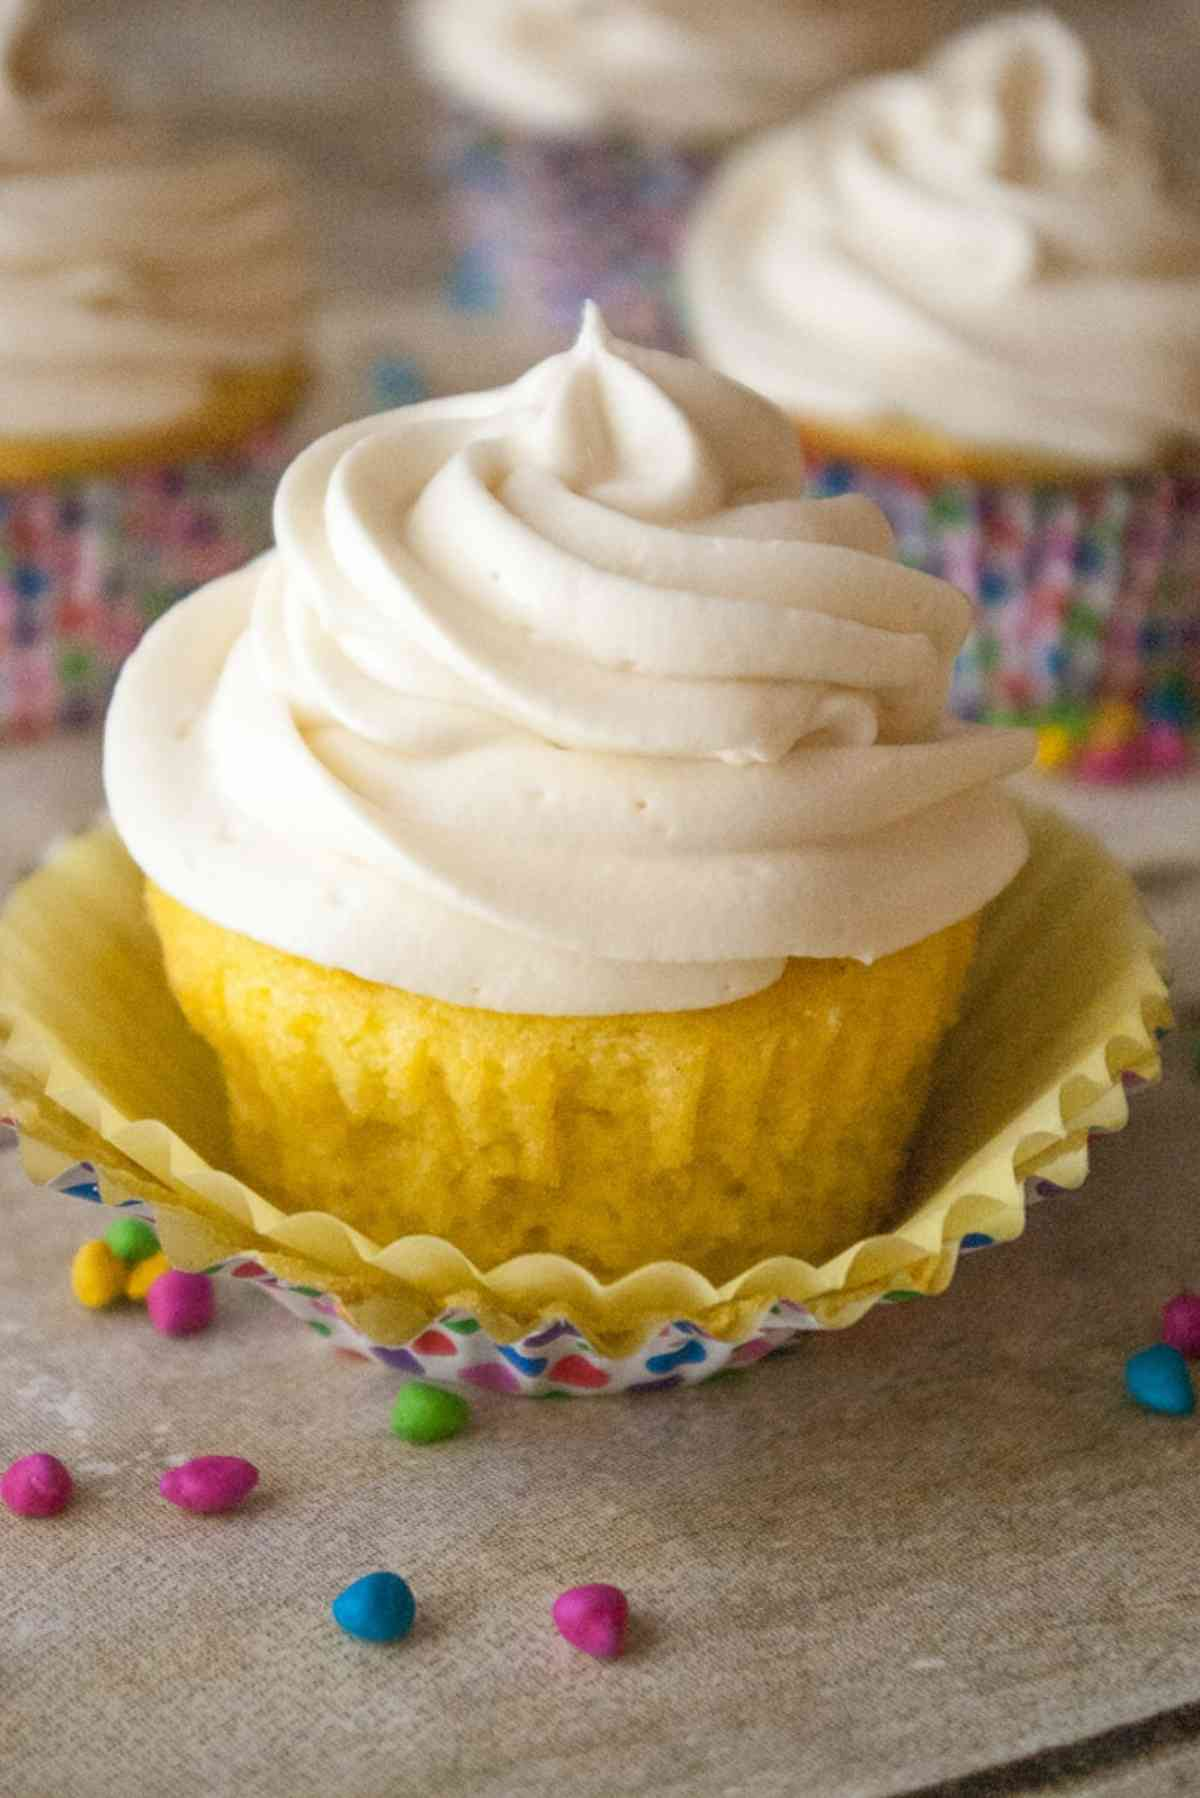 Whipped cream cheese frosting beautifully piped onto cupcakes.